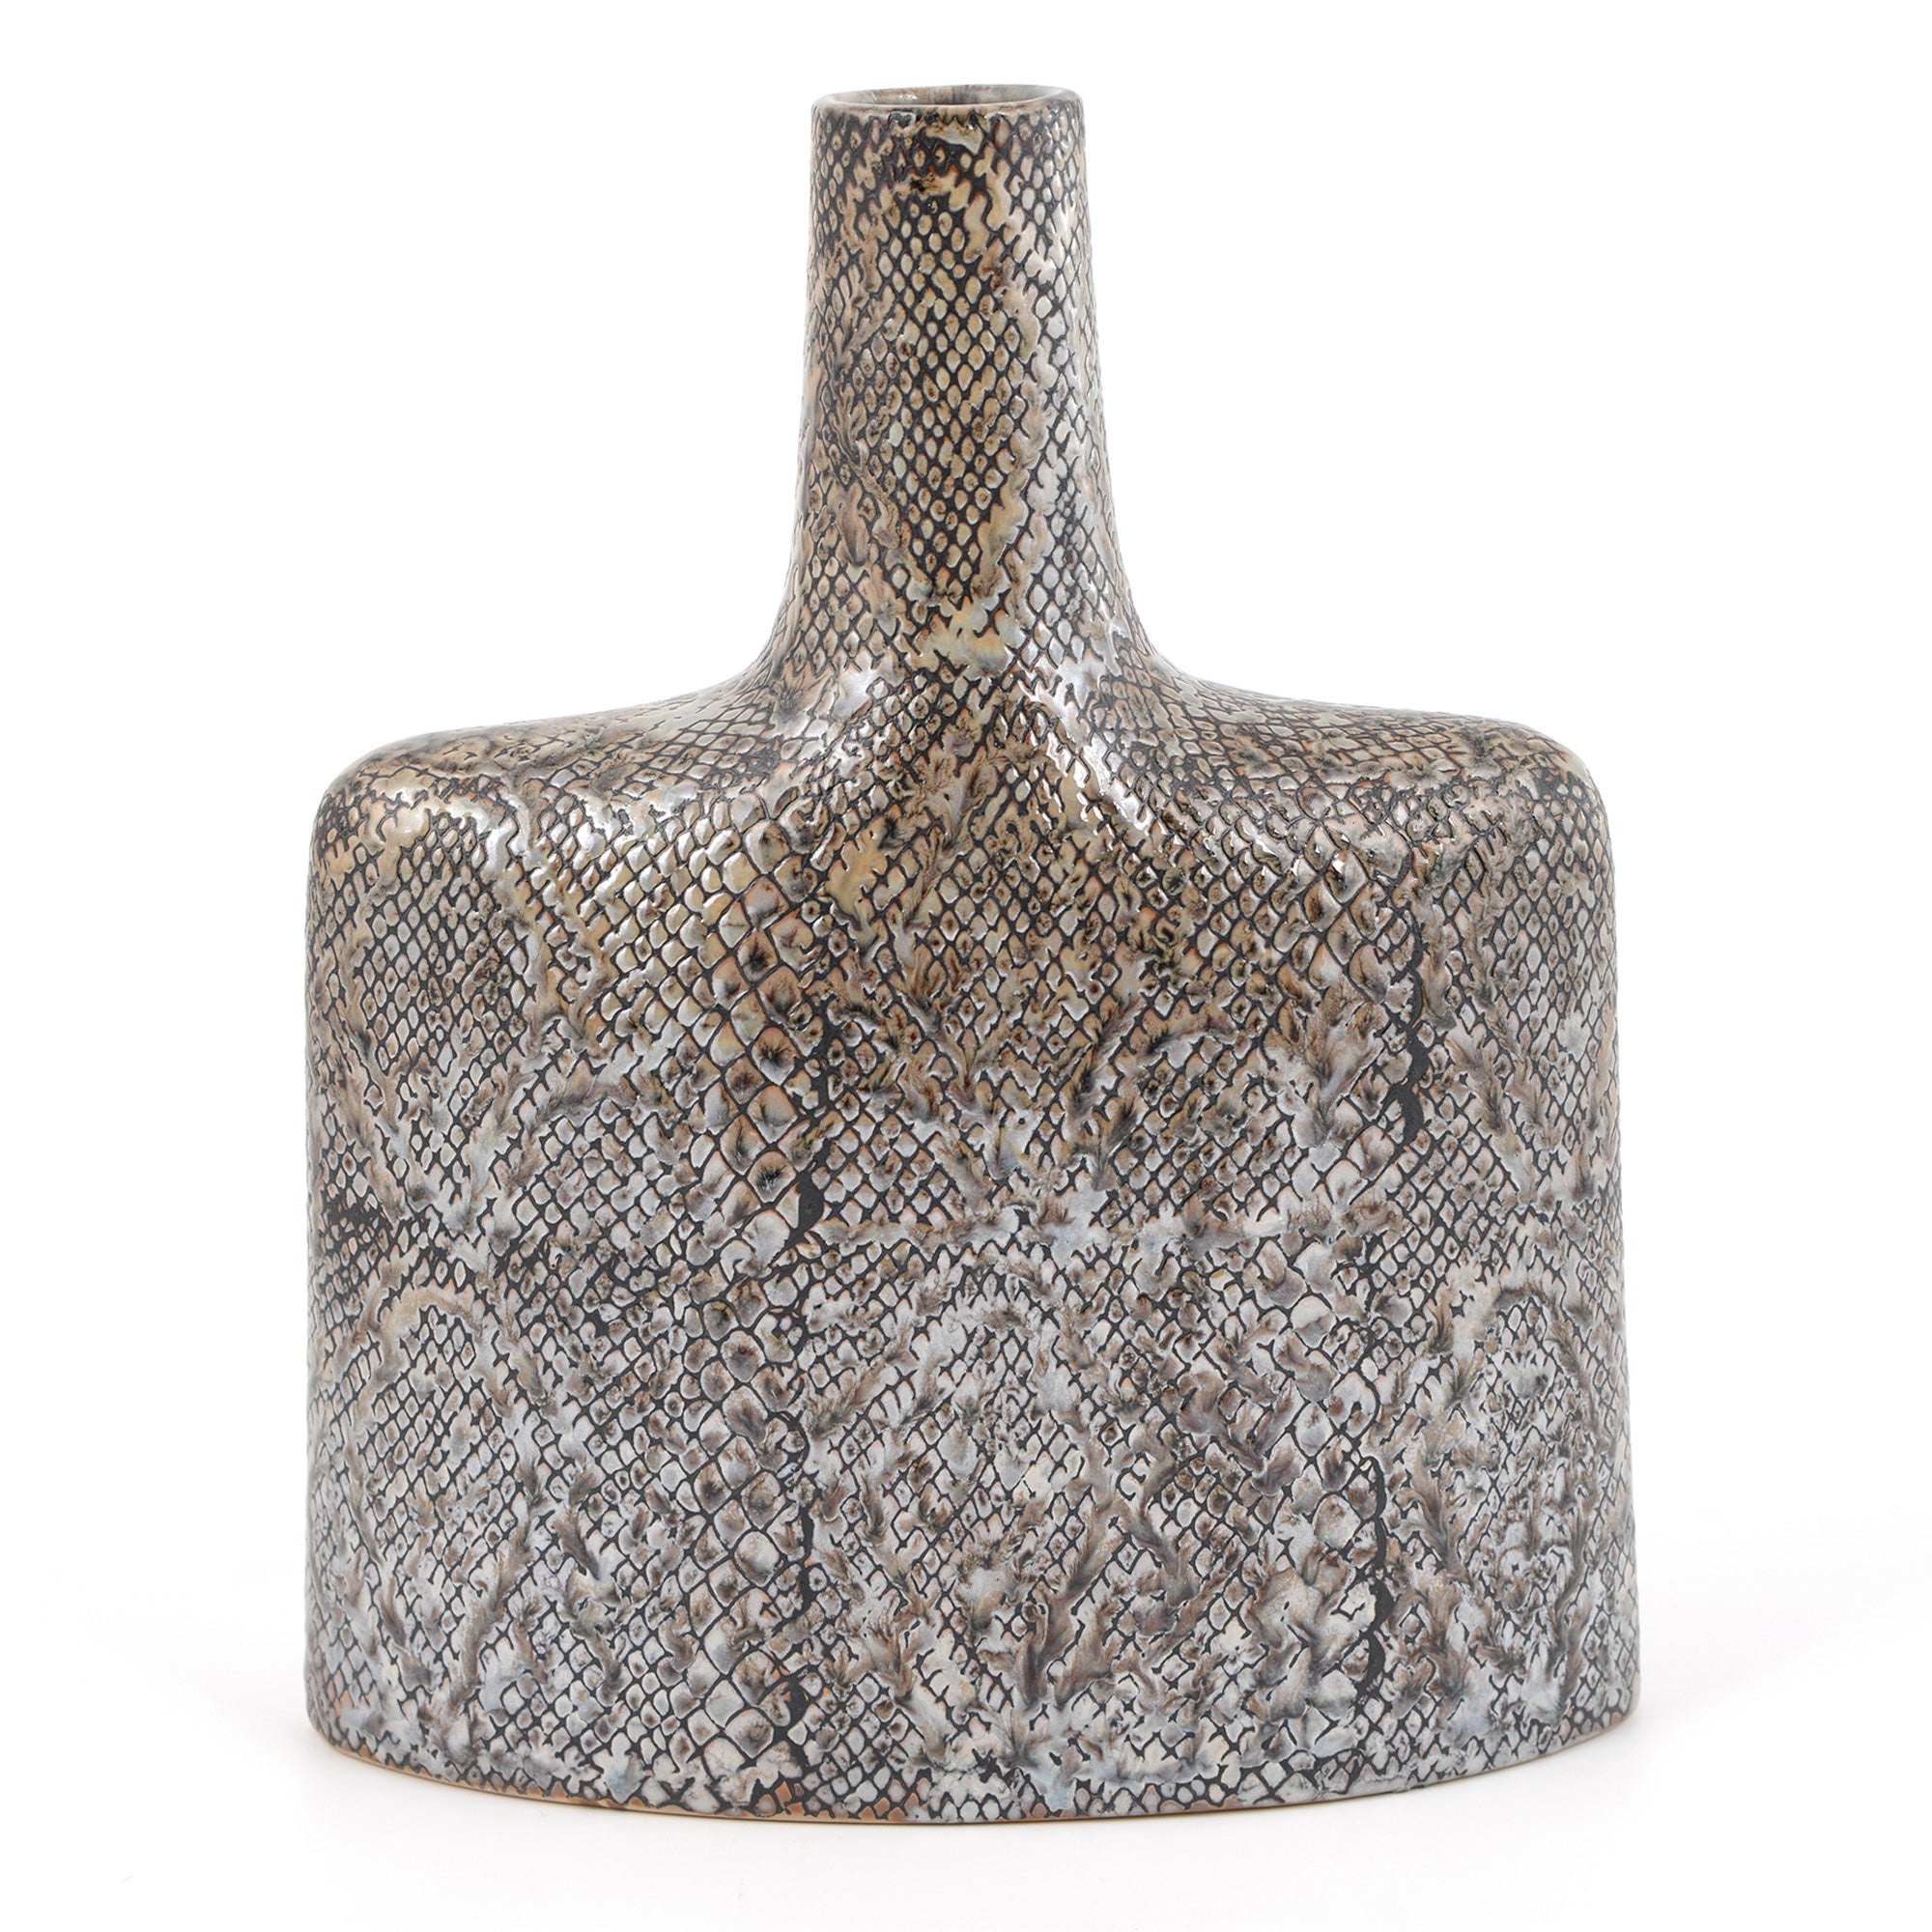 Global Fusion Collection Python Pattern Vase